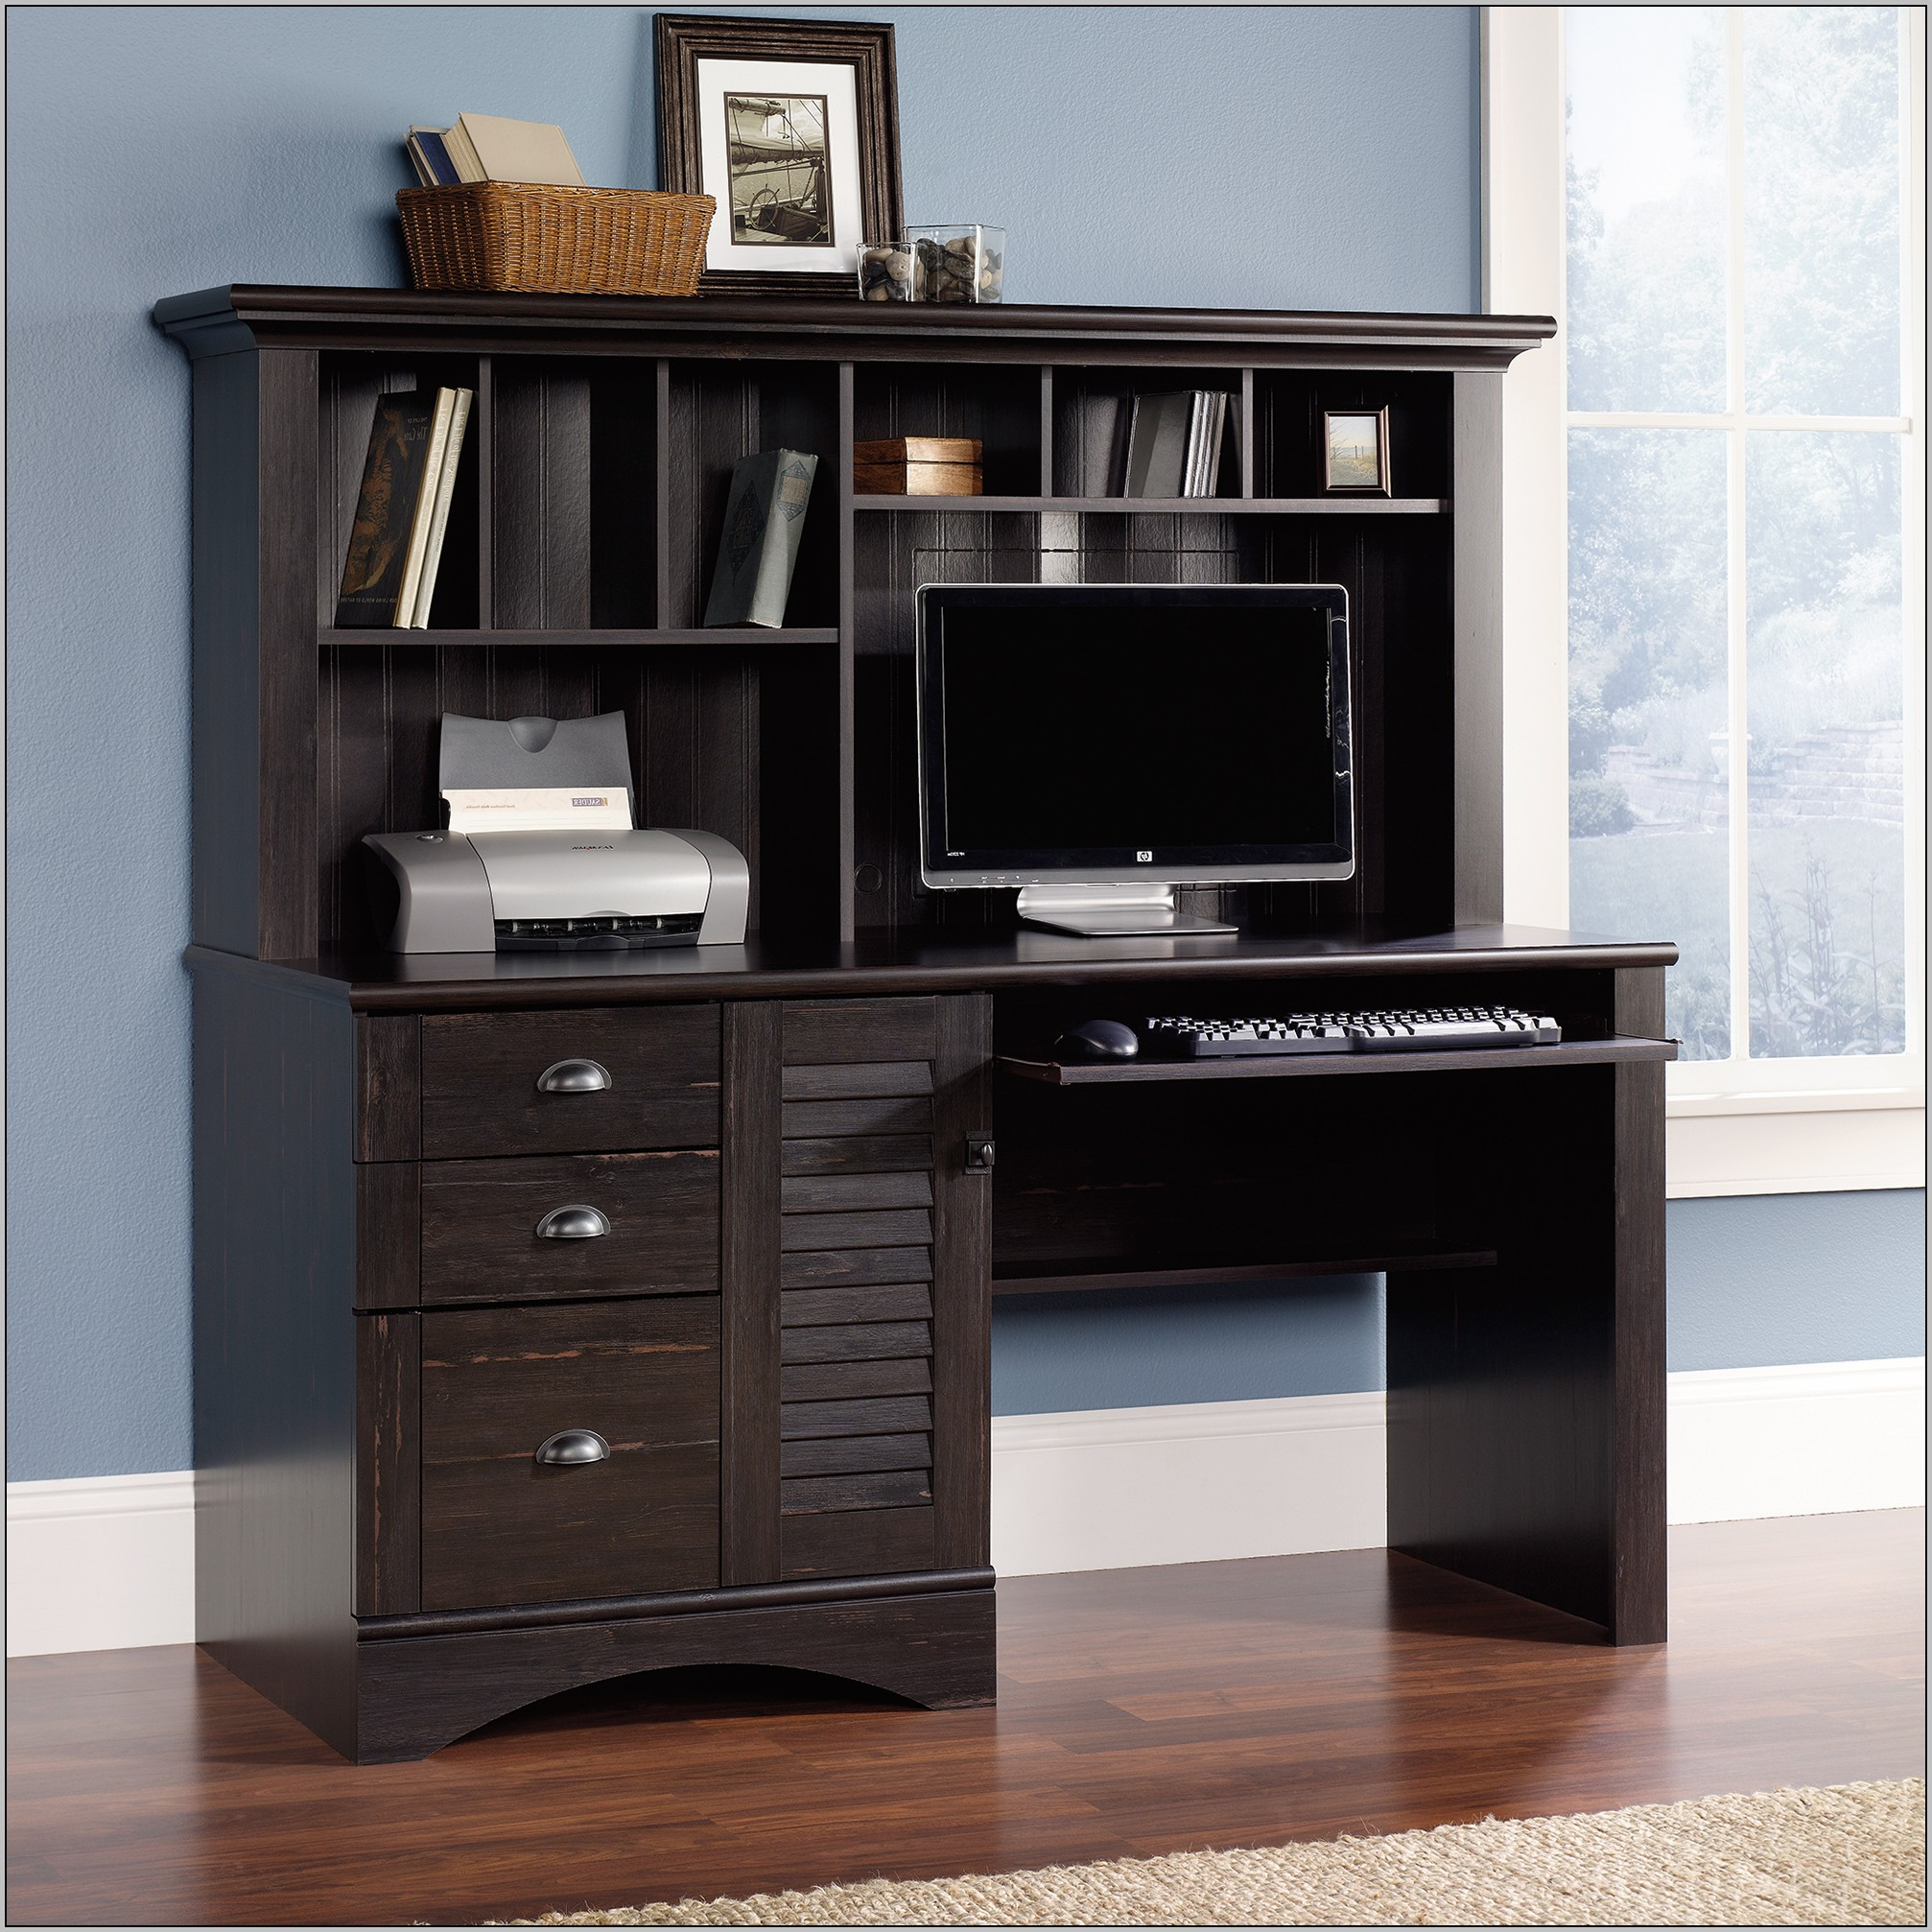 Sauder Harbor View Computer Desk With Hutch Black Desk Home Design Ideas LLQ08VKQkd21437